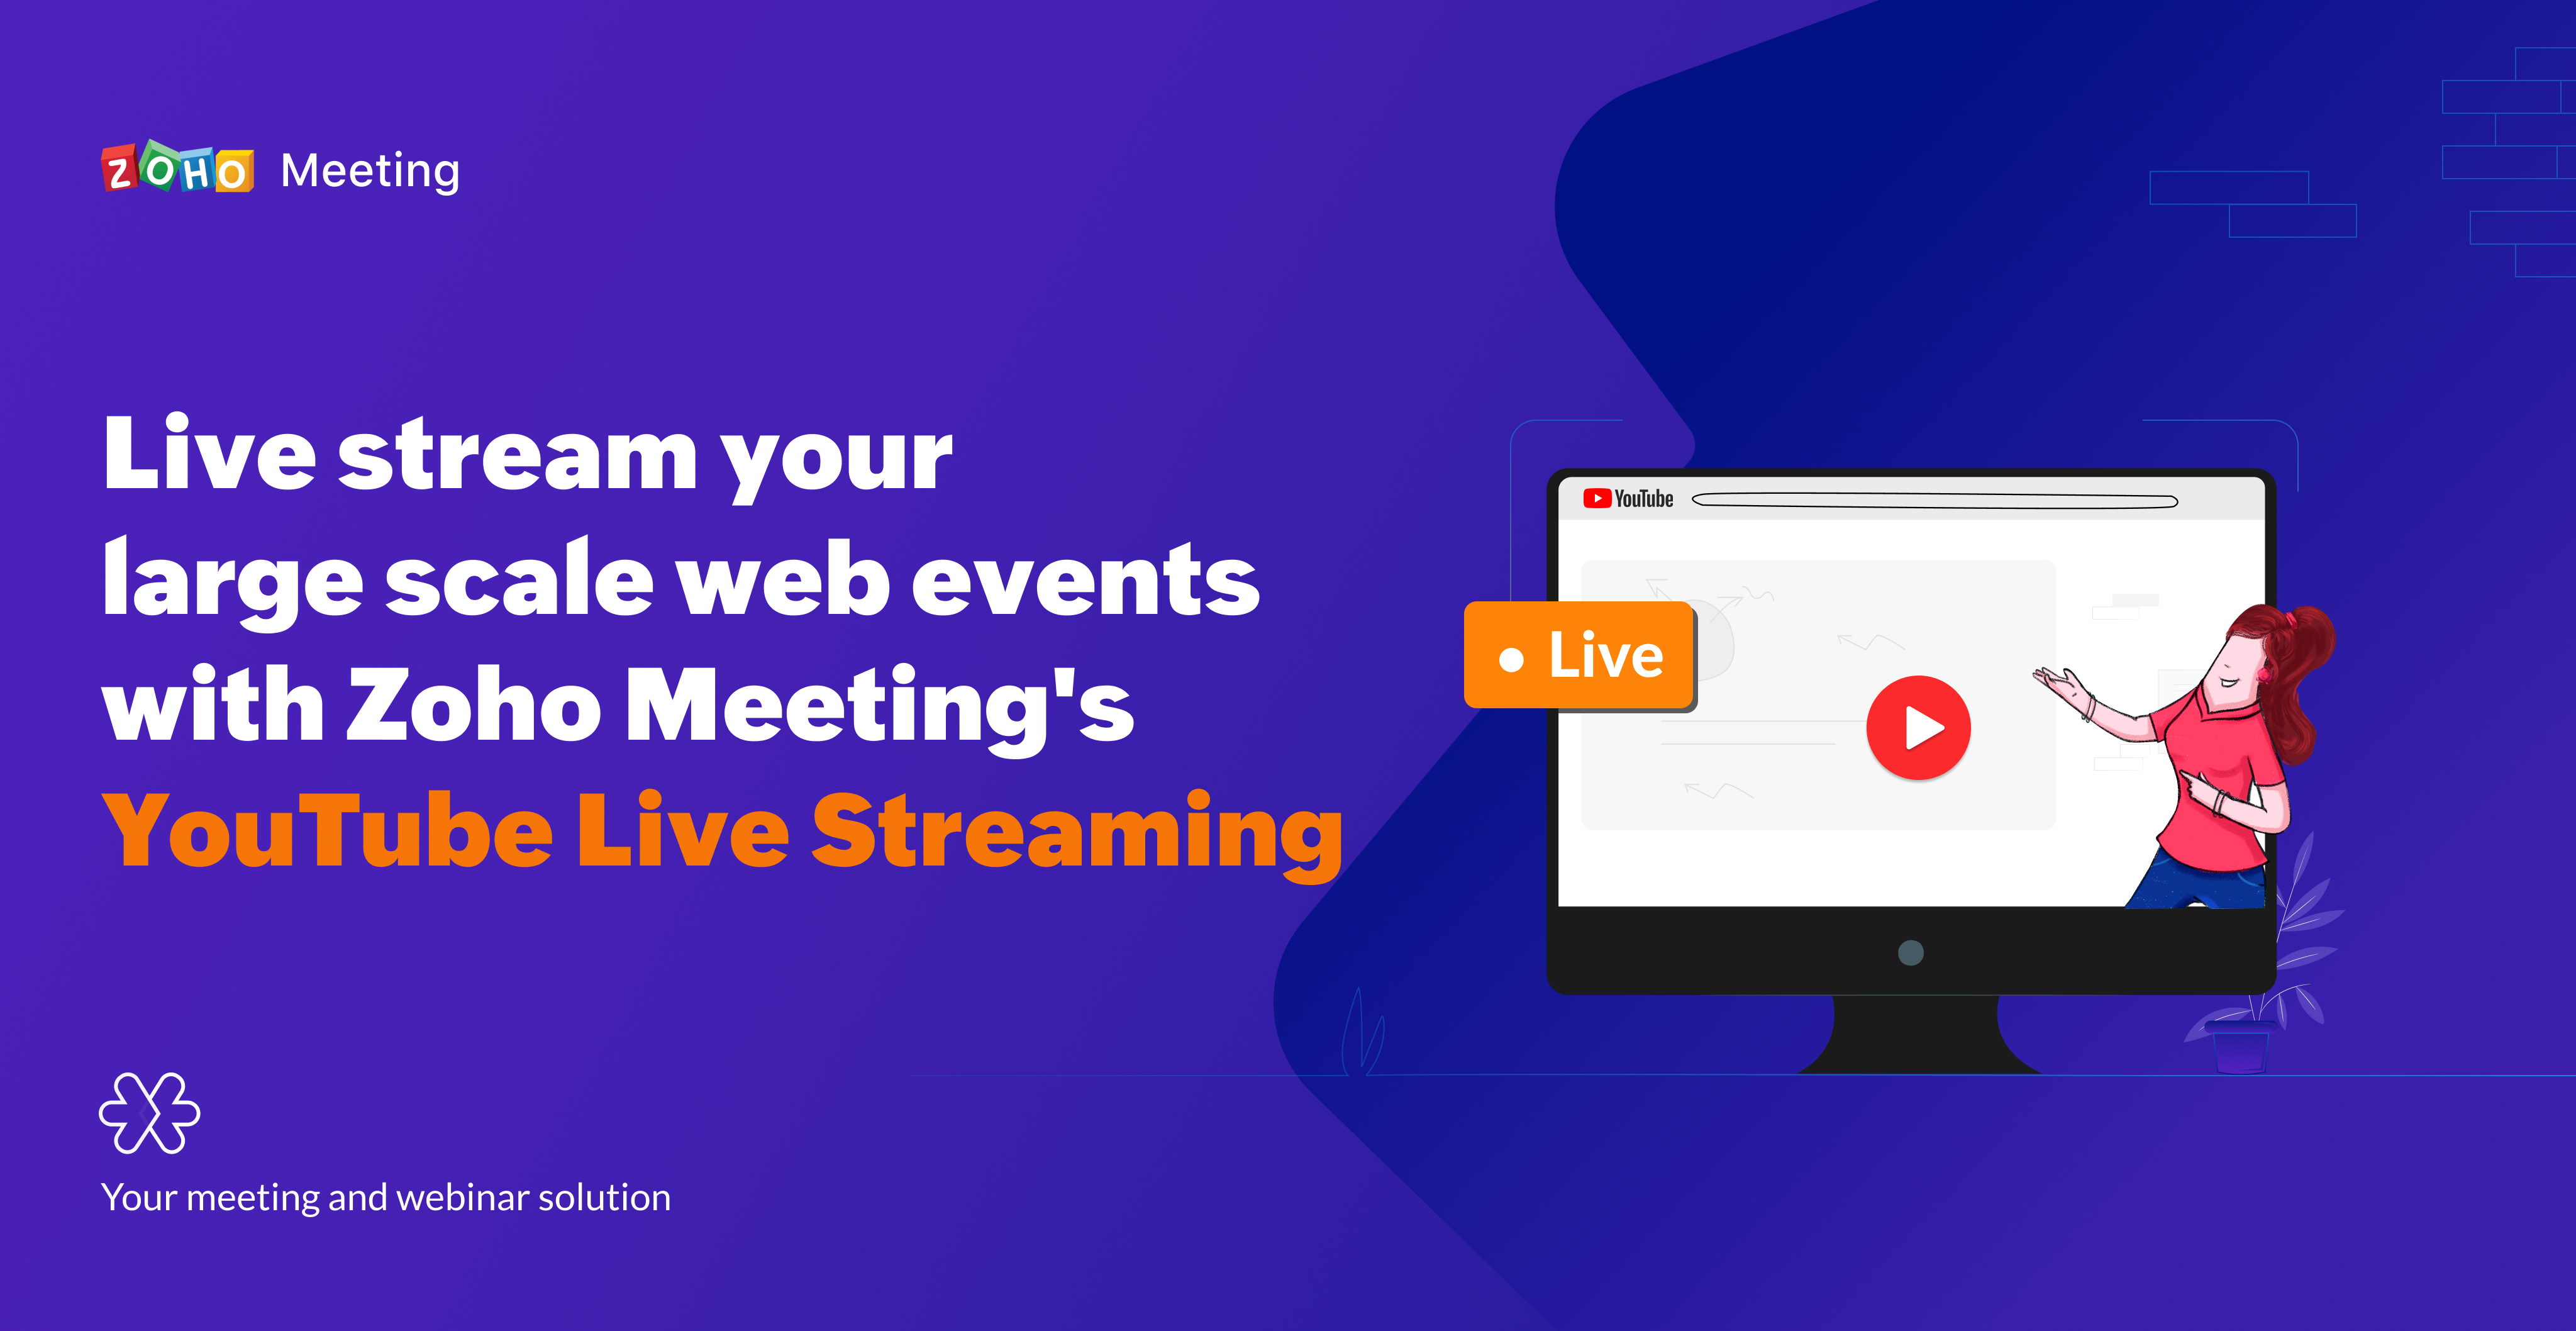 Expand your global outreach with Zoho Meeting's all-new YouTube Live Streaming